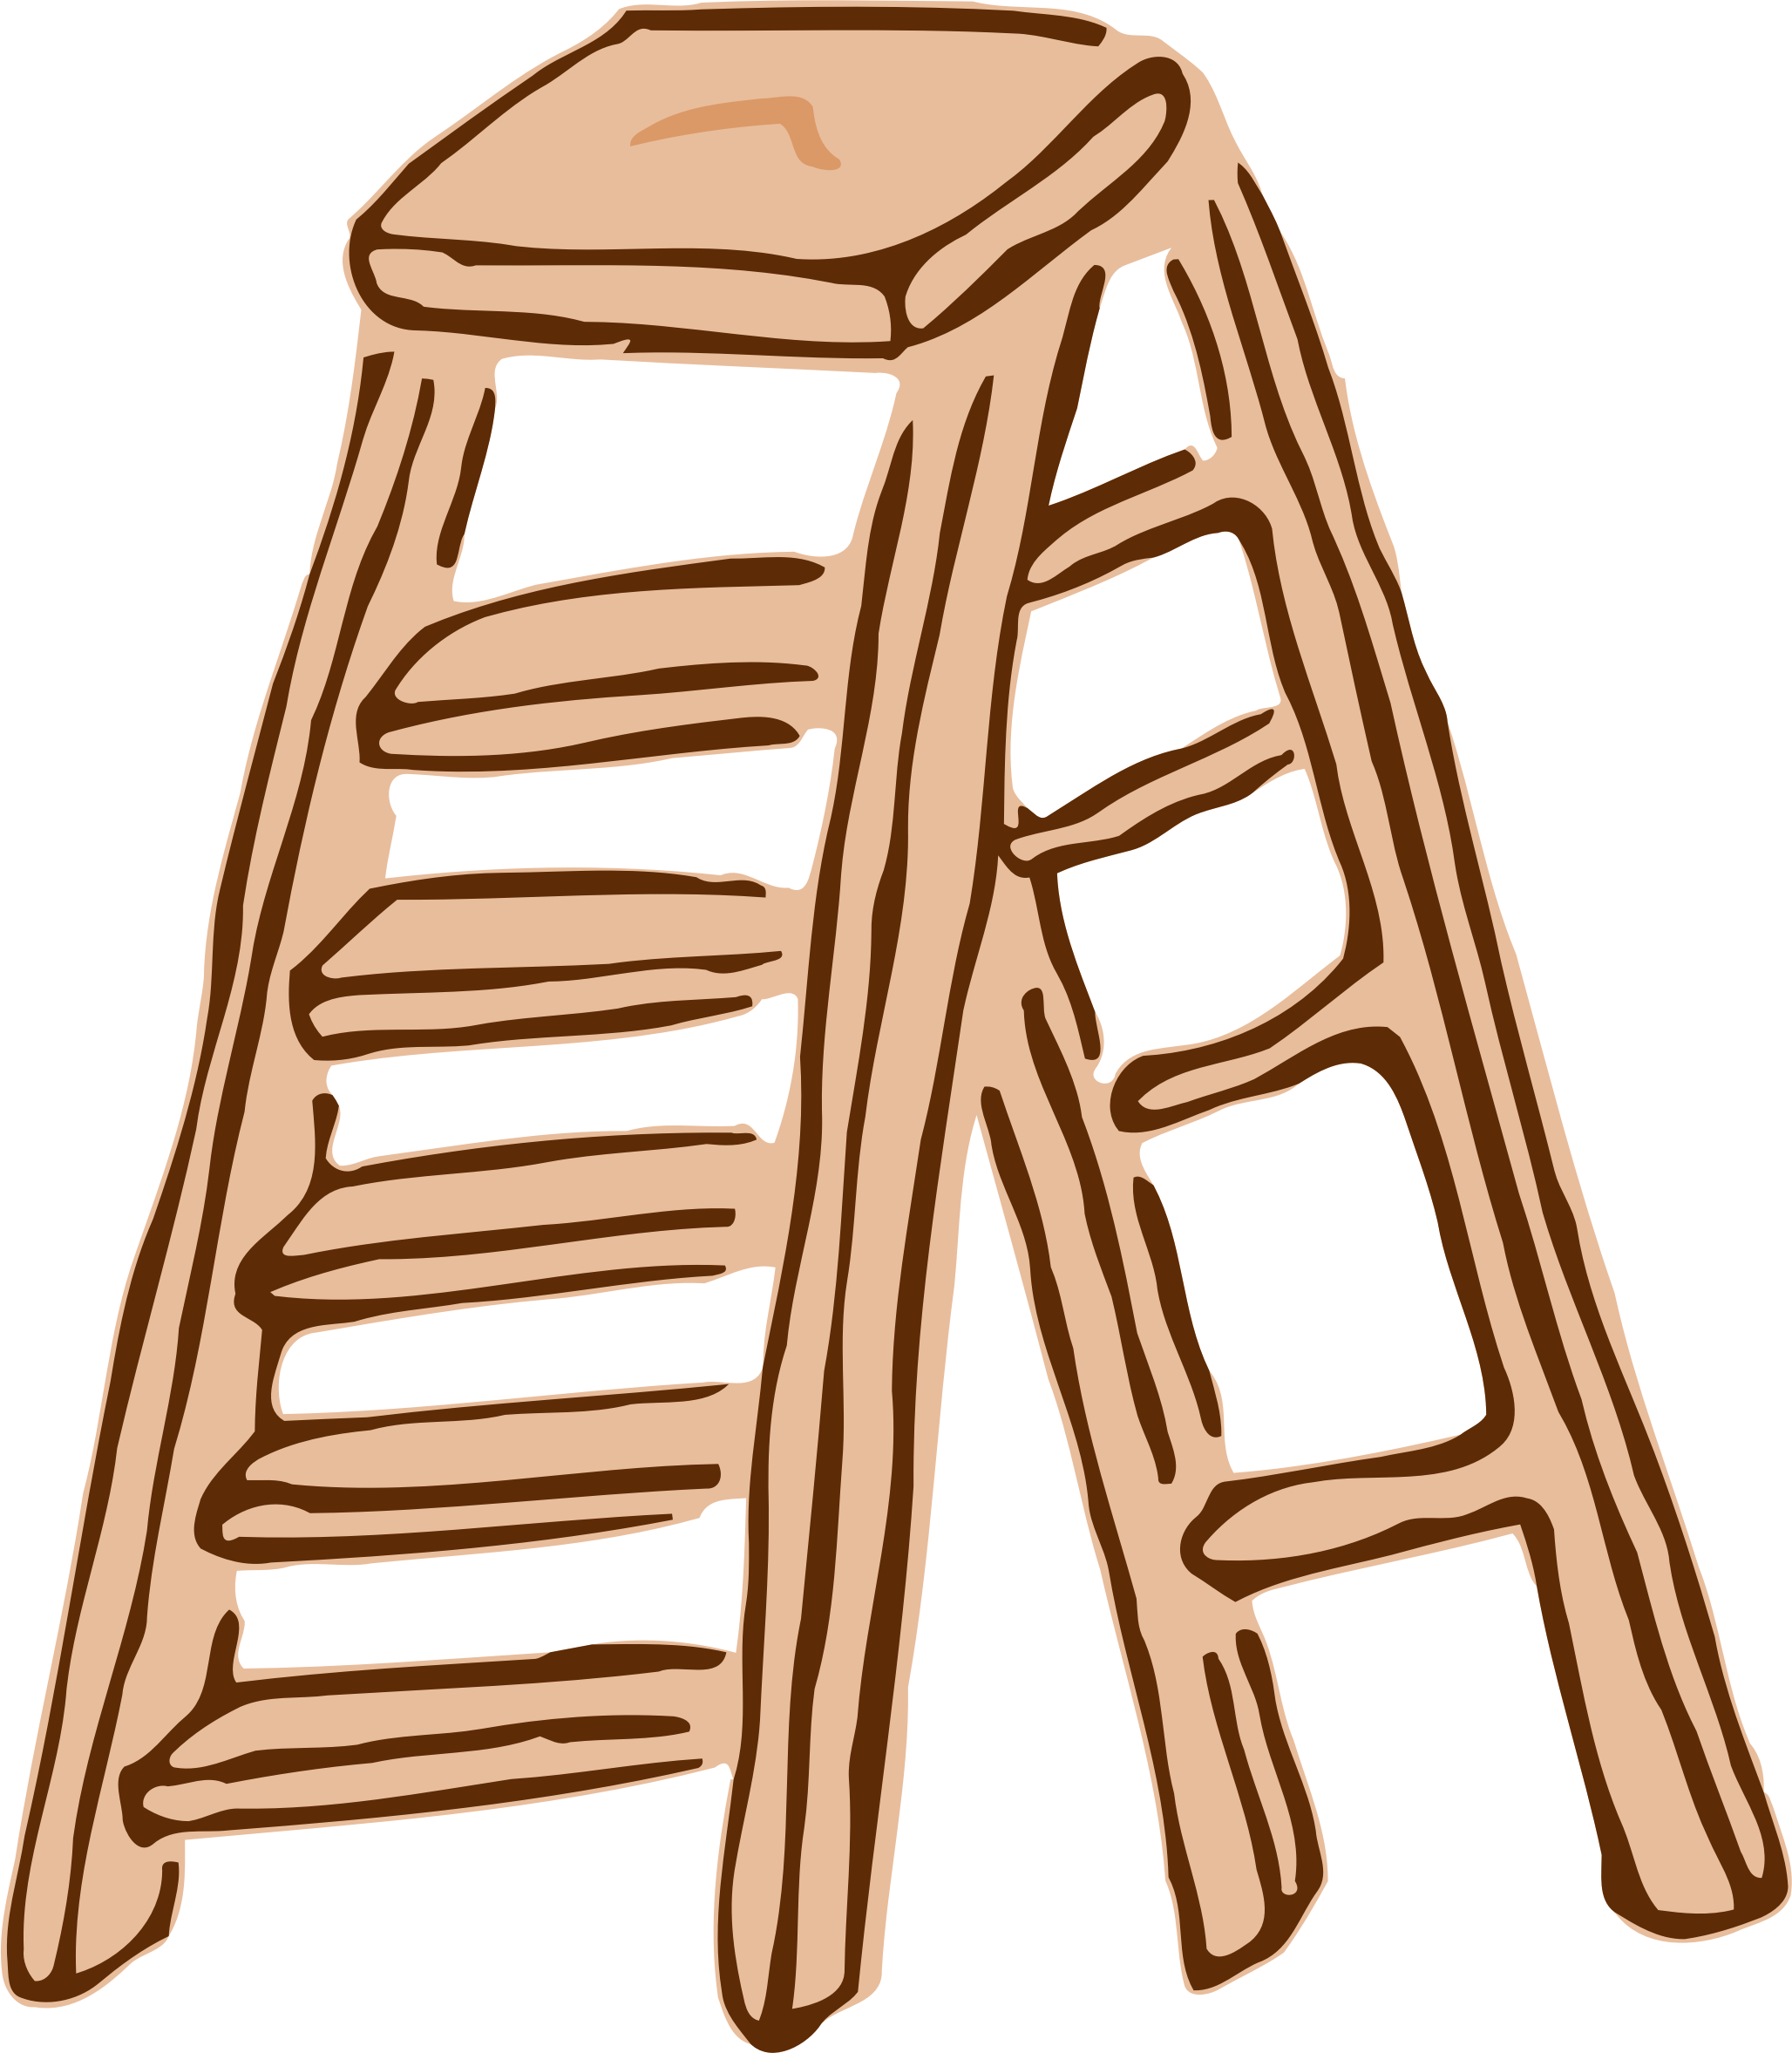 Roughly drawn stepladder by Firkin